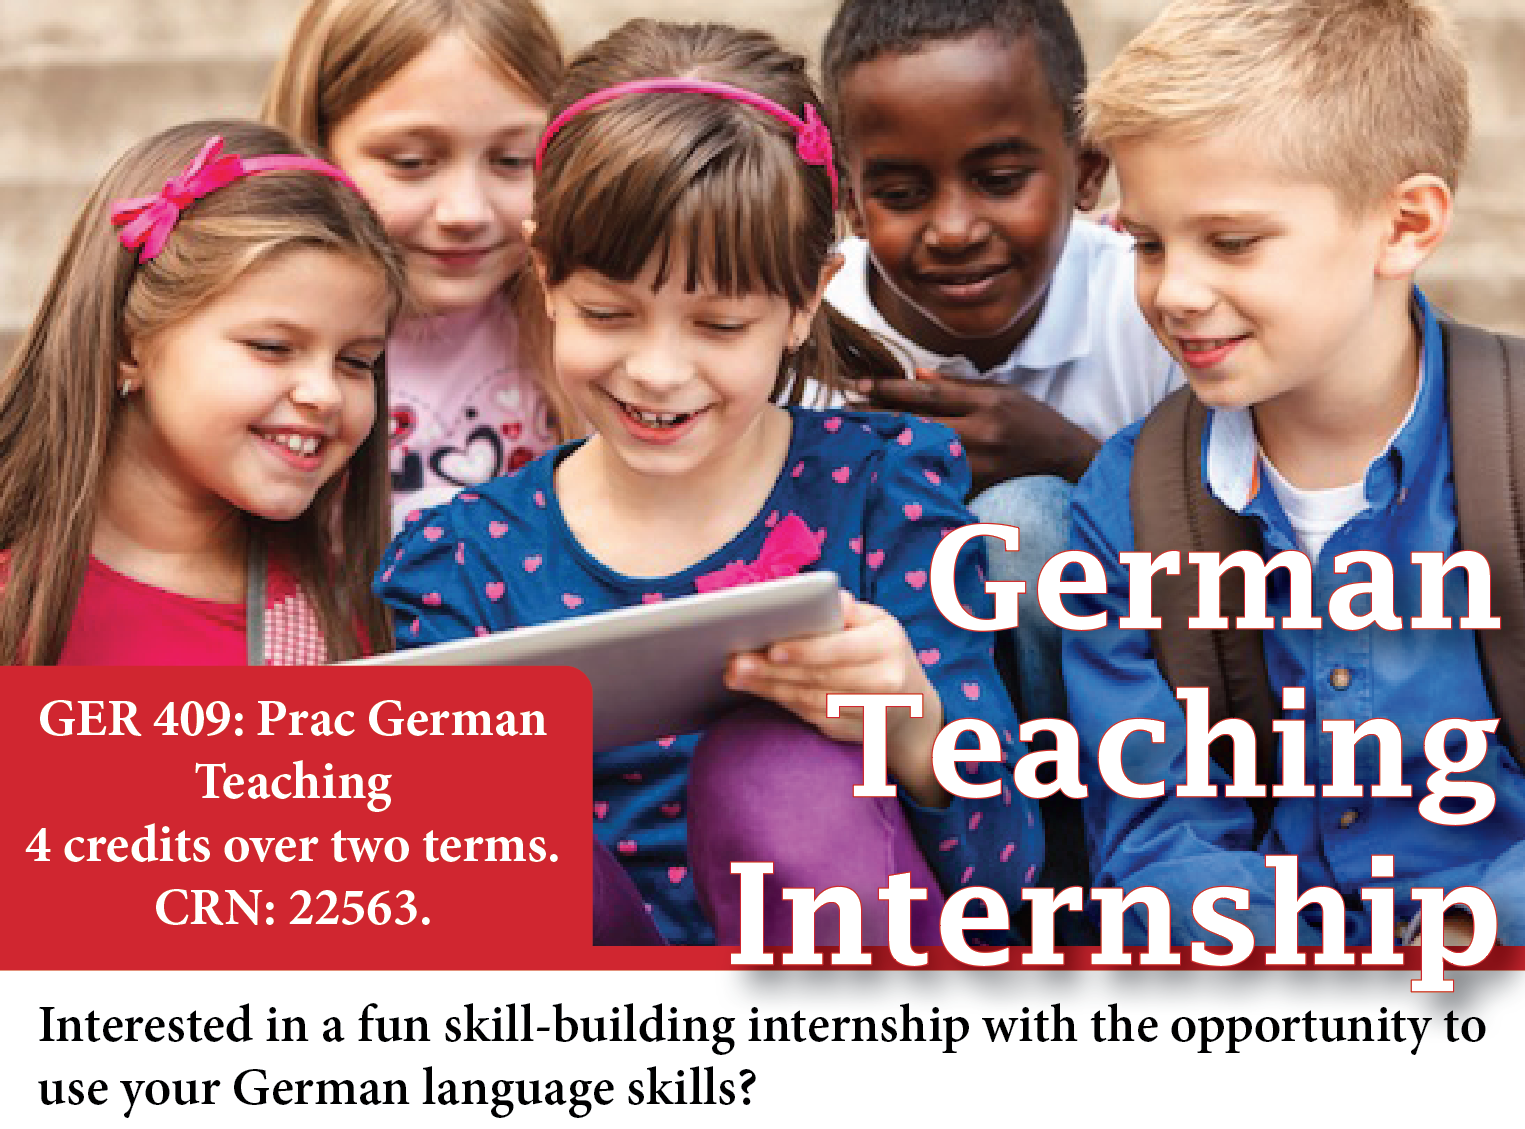 GER 409 Teaching Internship Promotional Image. Subtitle: GER 409: Prac German Teaching. Four credits over two terms. CRN: 22563